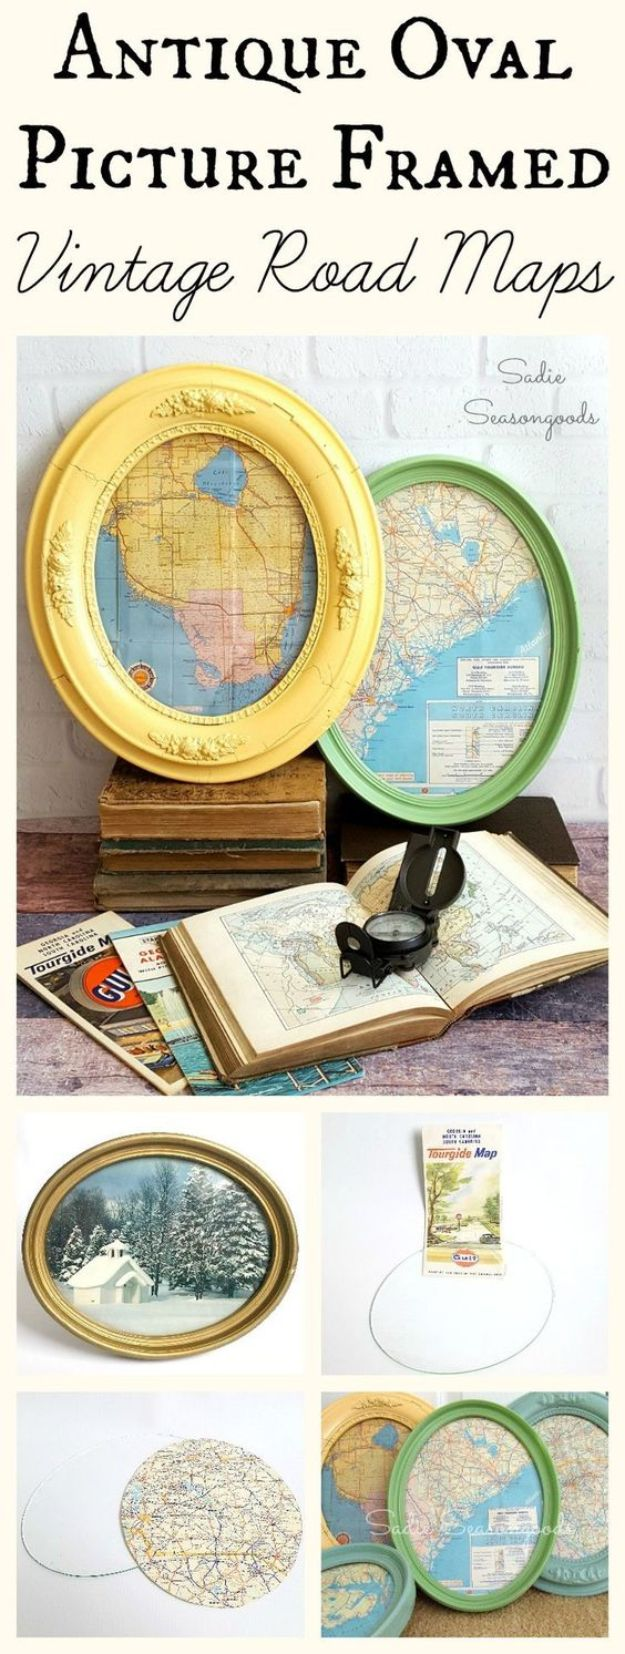 DIY Ideas With Maps - Antique Oval Framed Vintage Road Maps - Easy Crafts, Home Decor, Art and Gifts Your Can Make With A Map - Pinboard, Canvas, Painting, Paper Flowers, Signs Projects